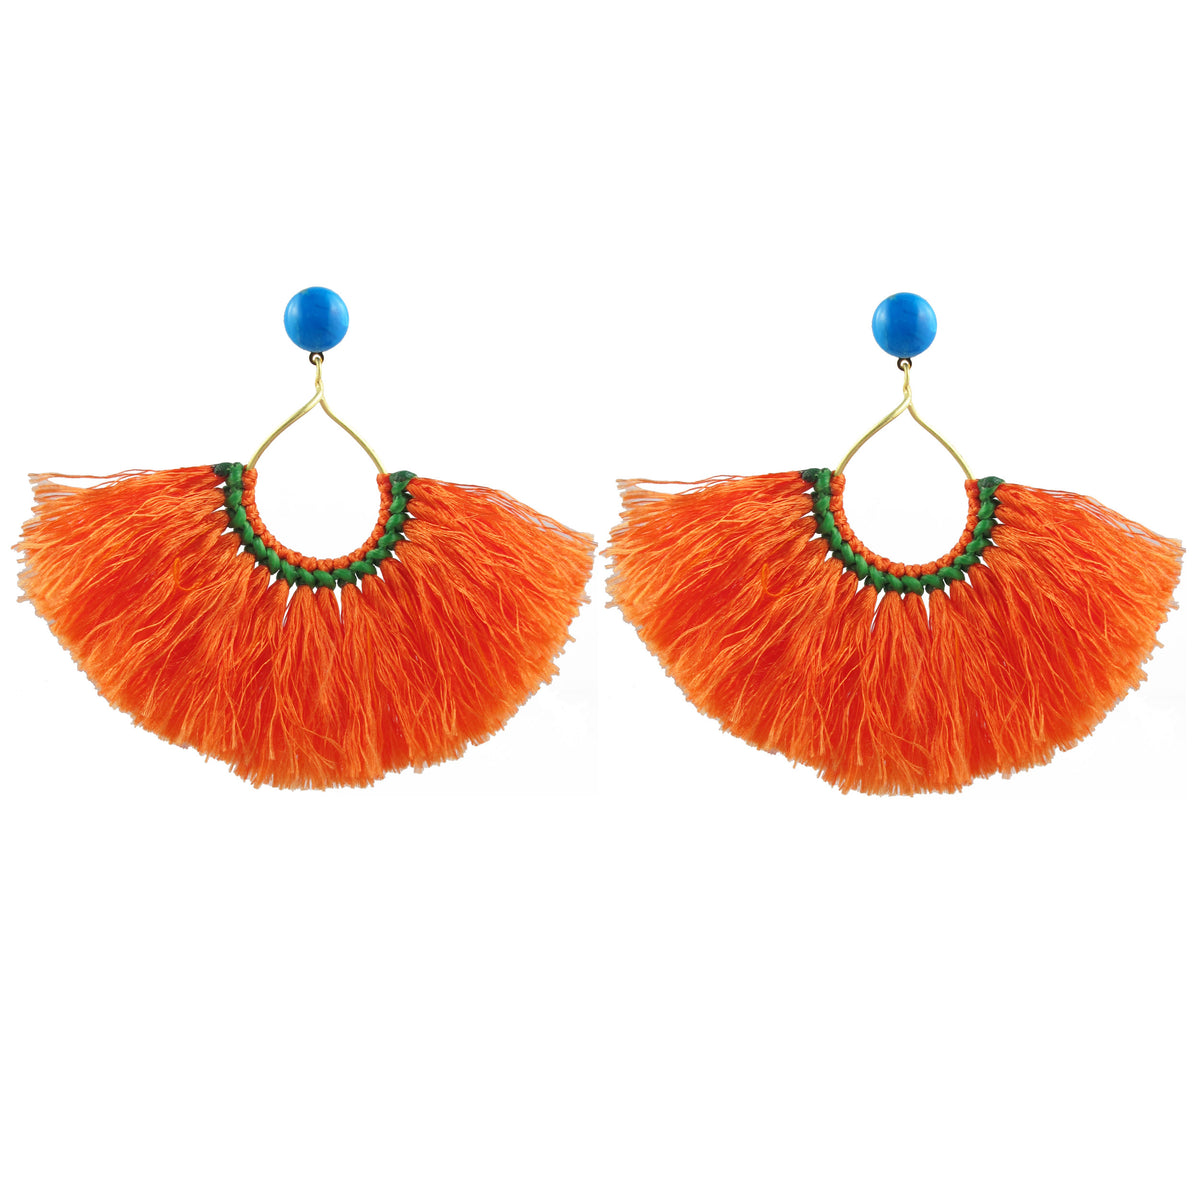 Zuha Hoop Tassel Earrings (Orange)